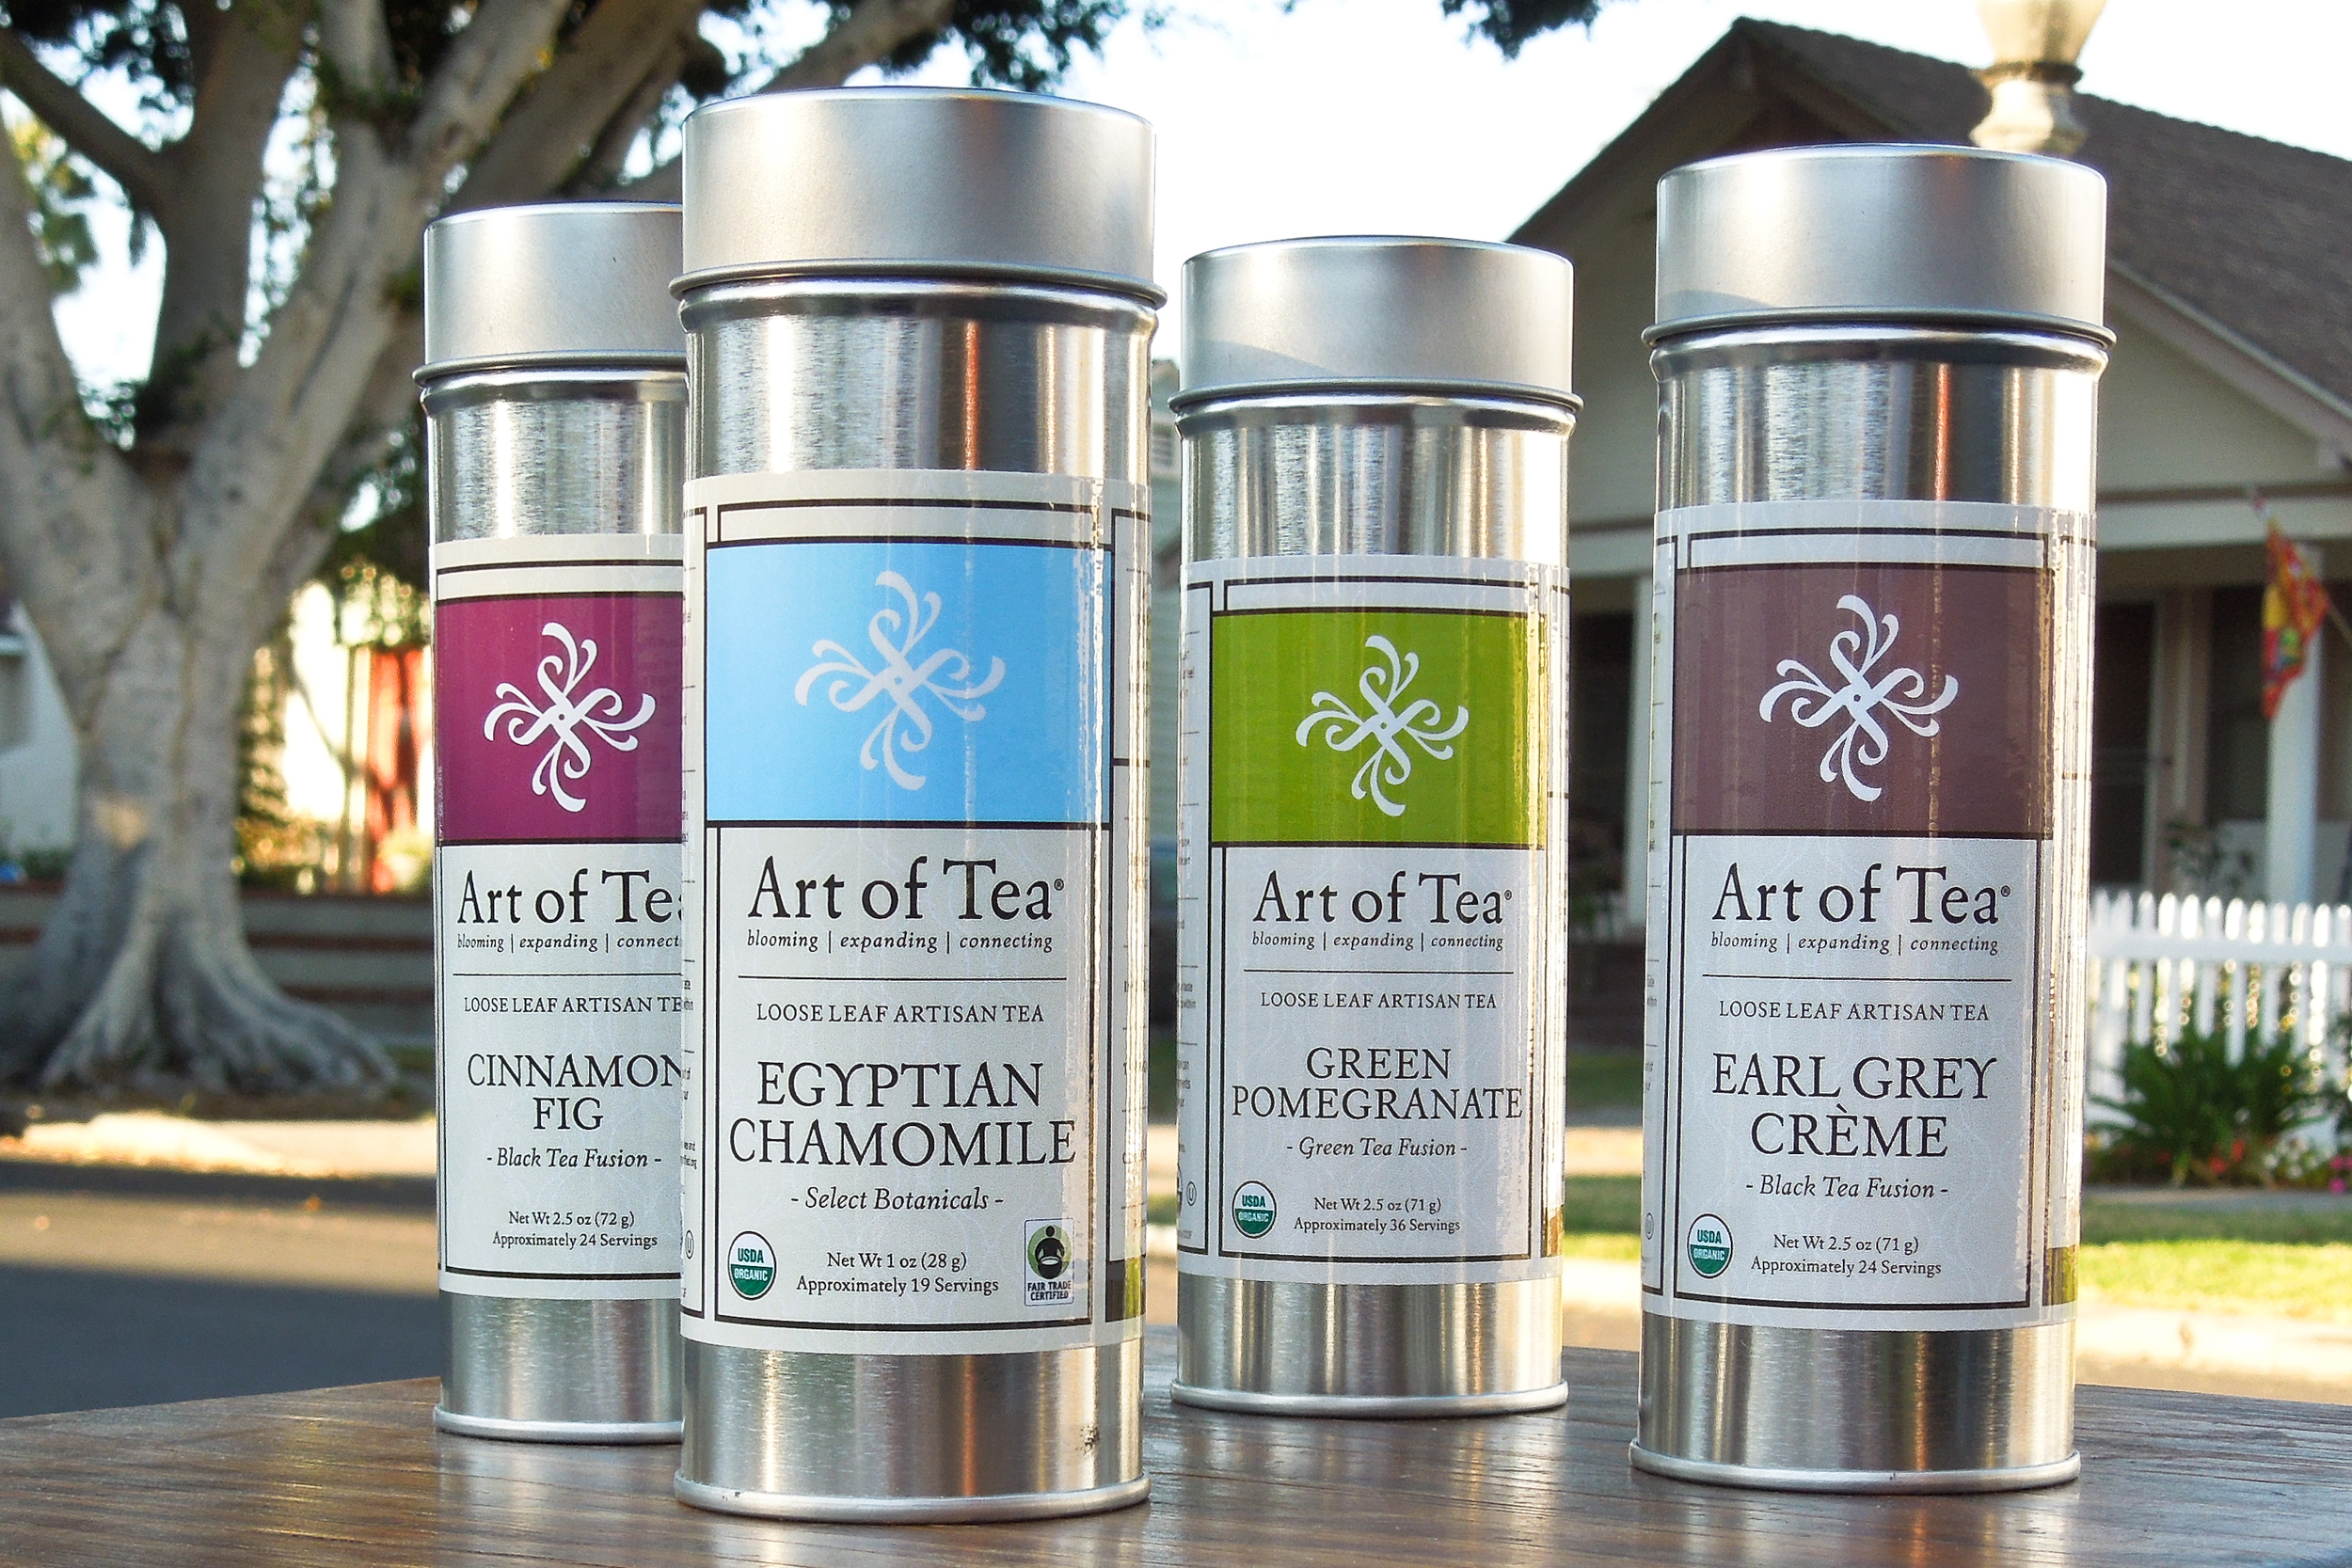 art-of-tea-selection.jpg